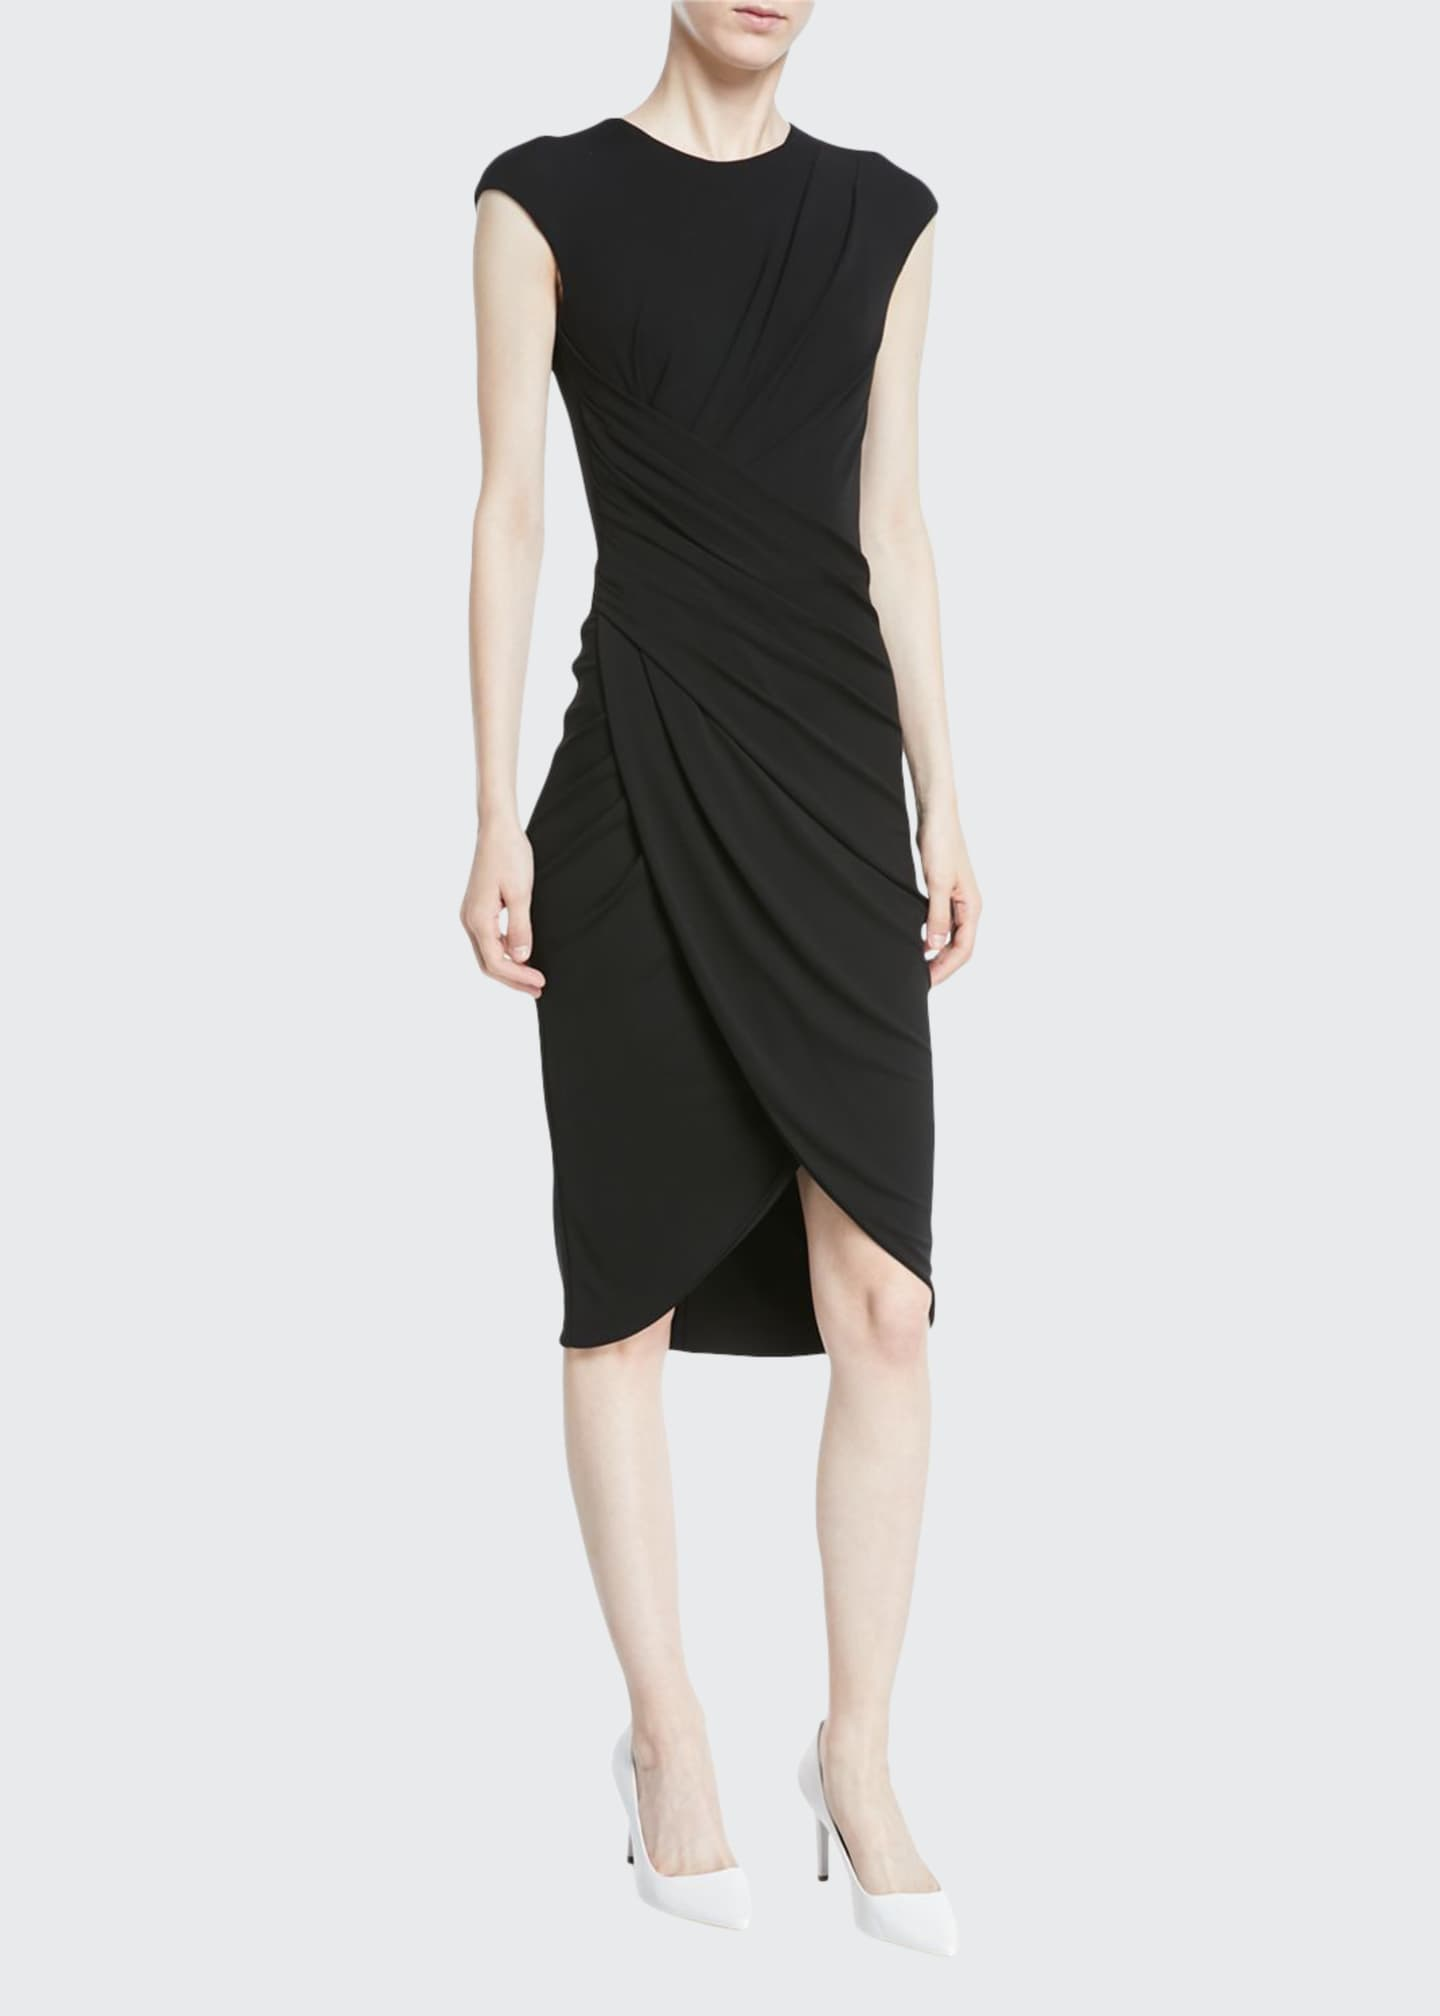 Michael Kors Collection Cap-Sleeve Ruched Stretch Matte Jersey